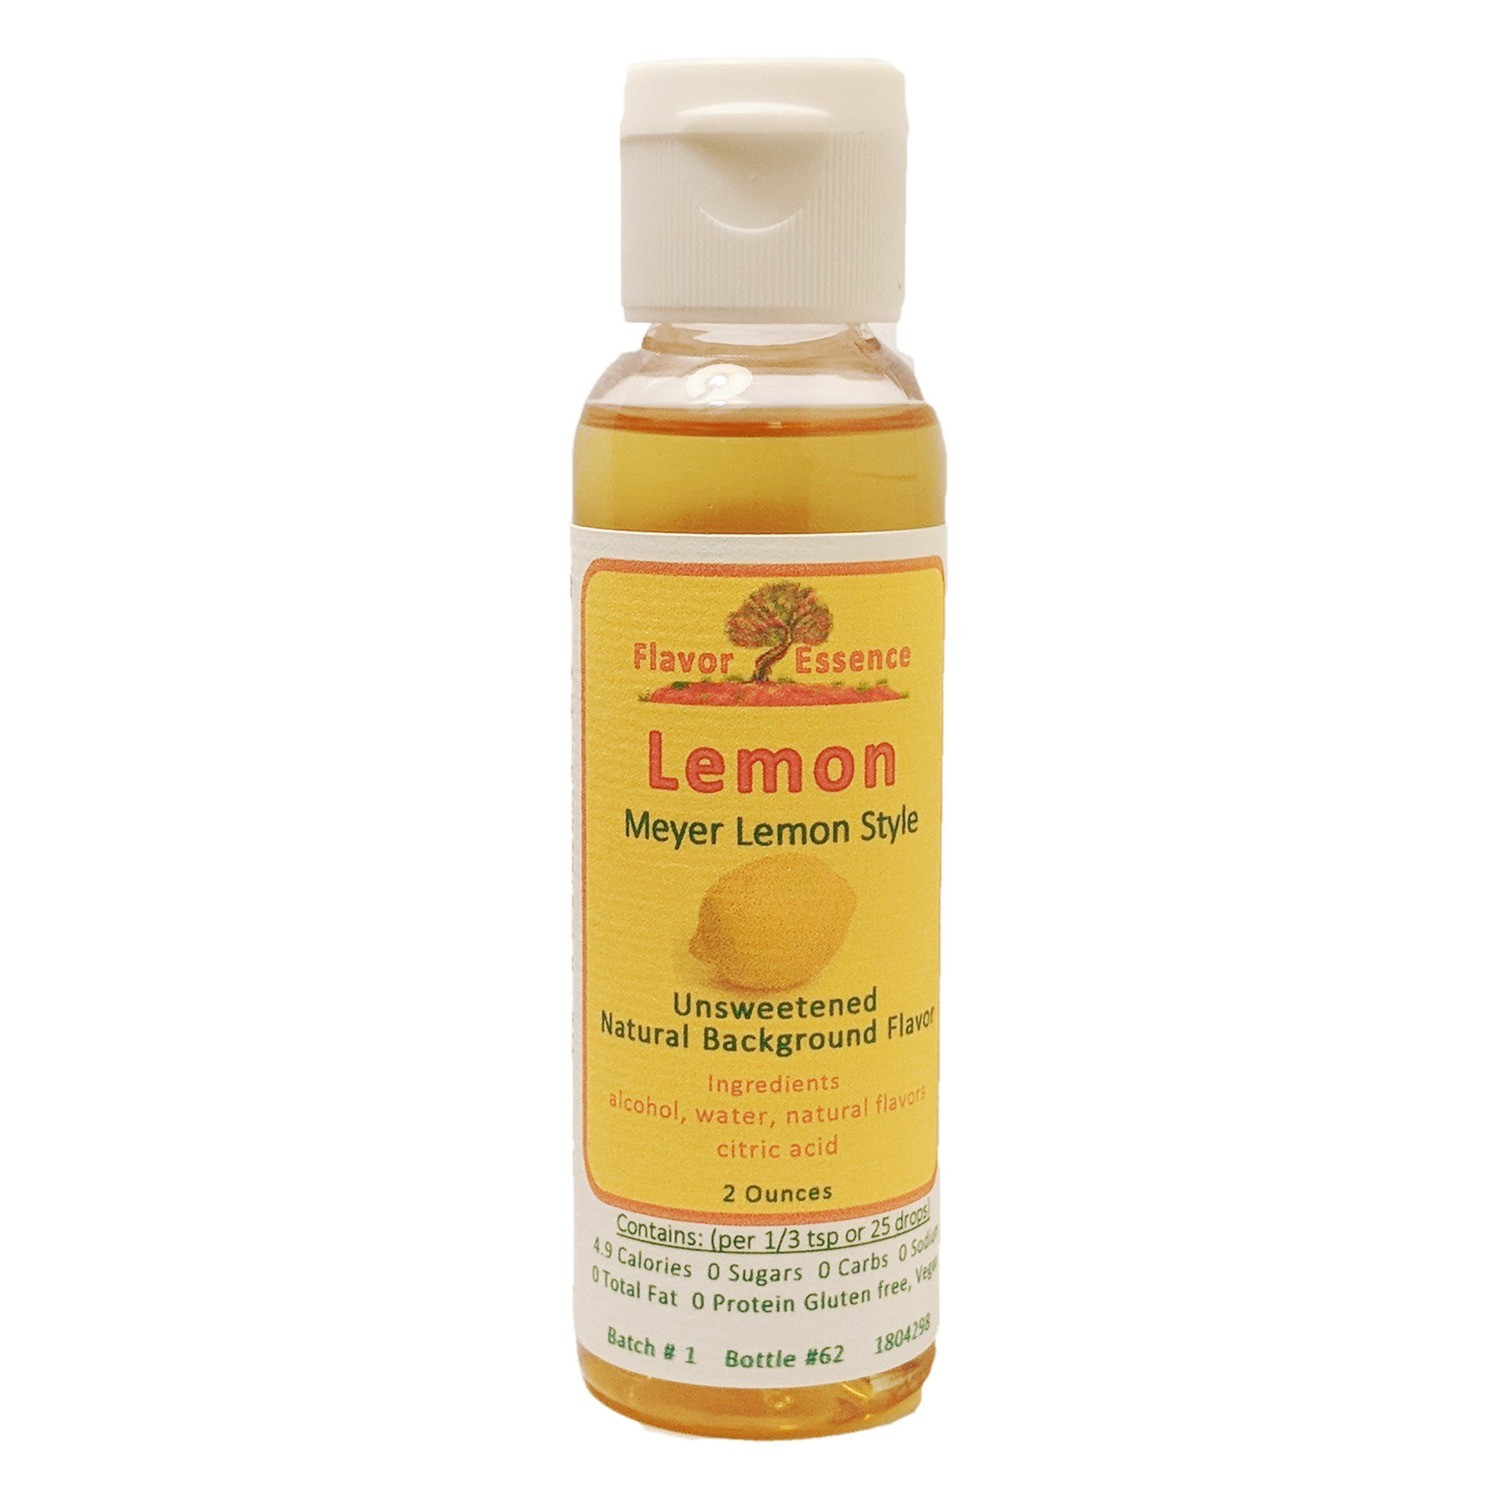 Flavor Essence LEMON (Meyer Lemon) -Unsweetened Natural Flavoring